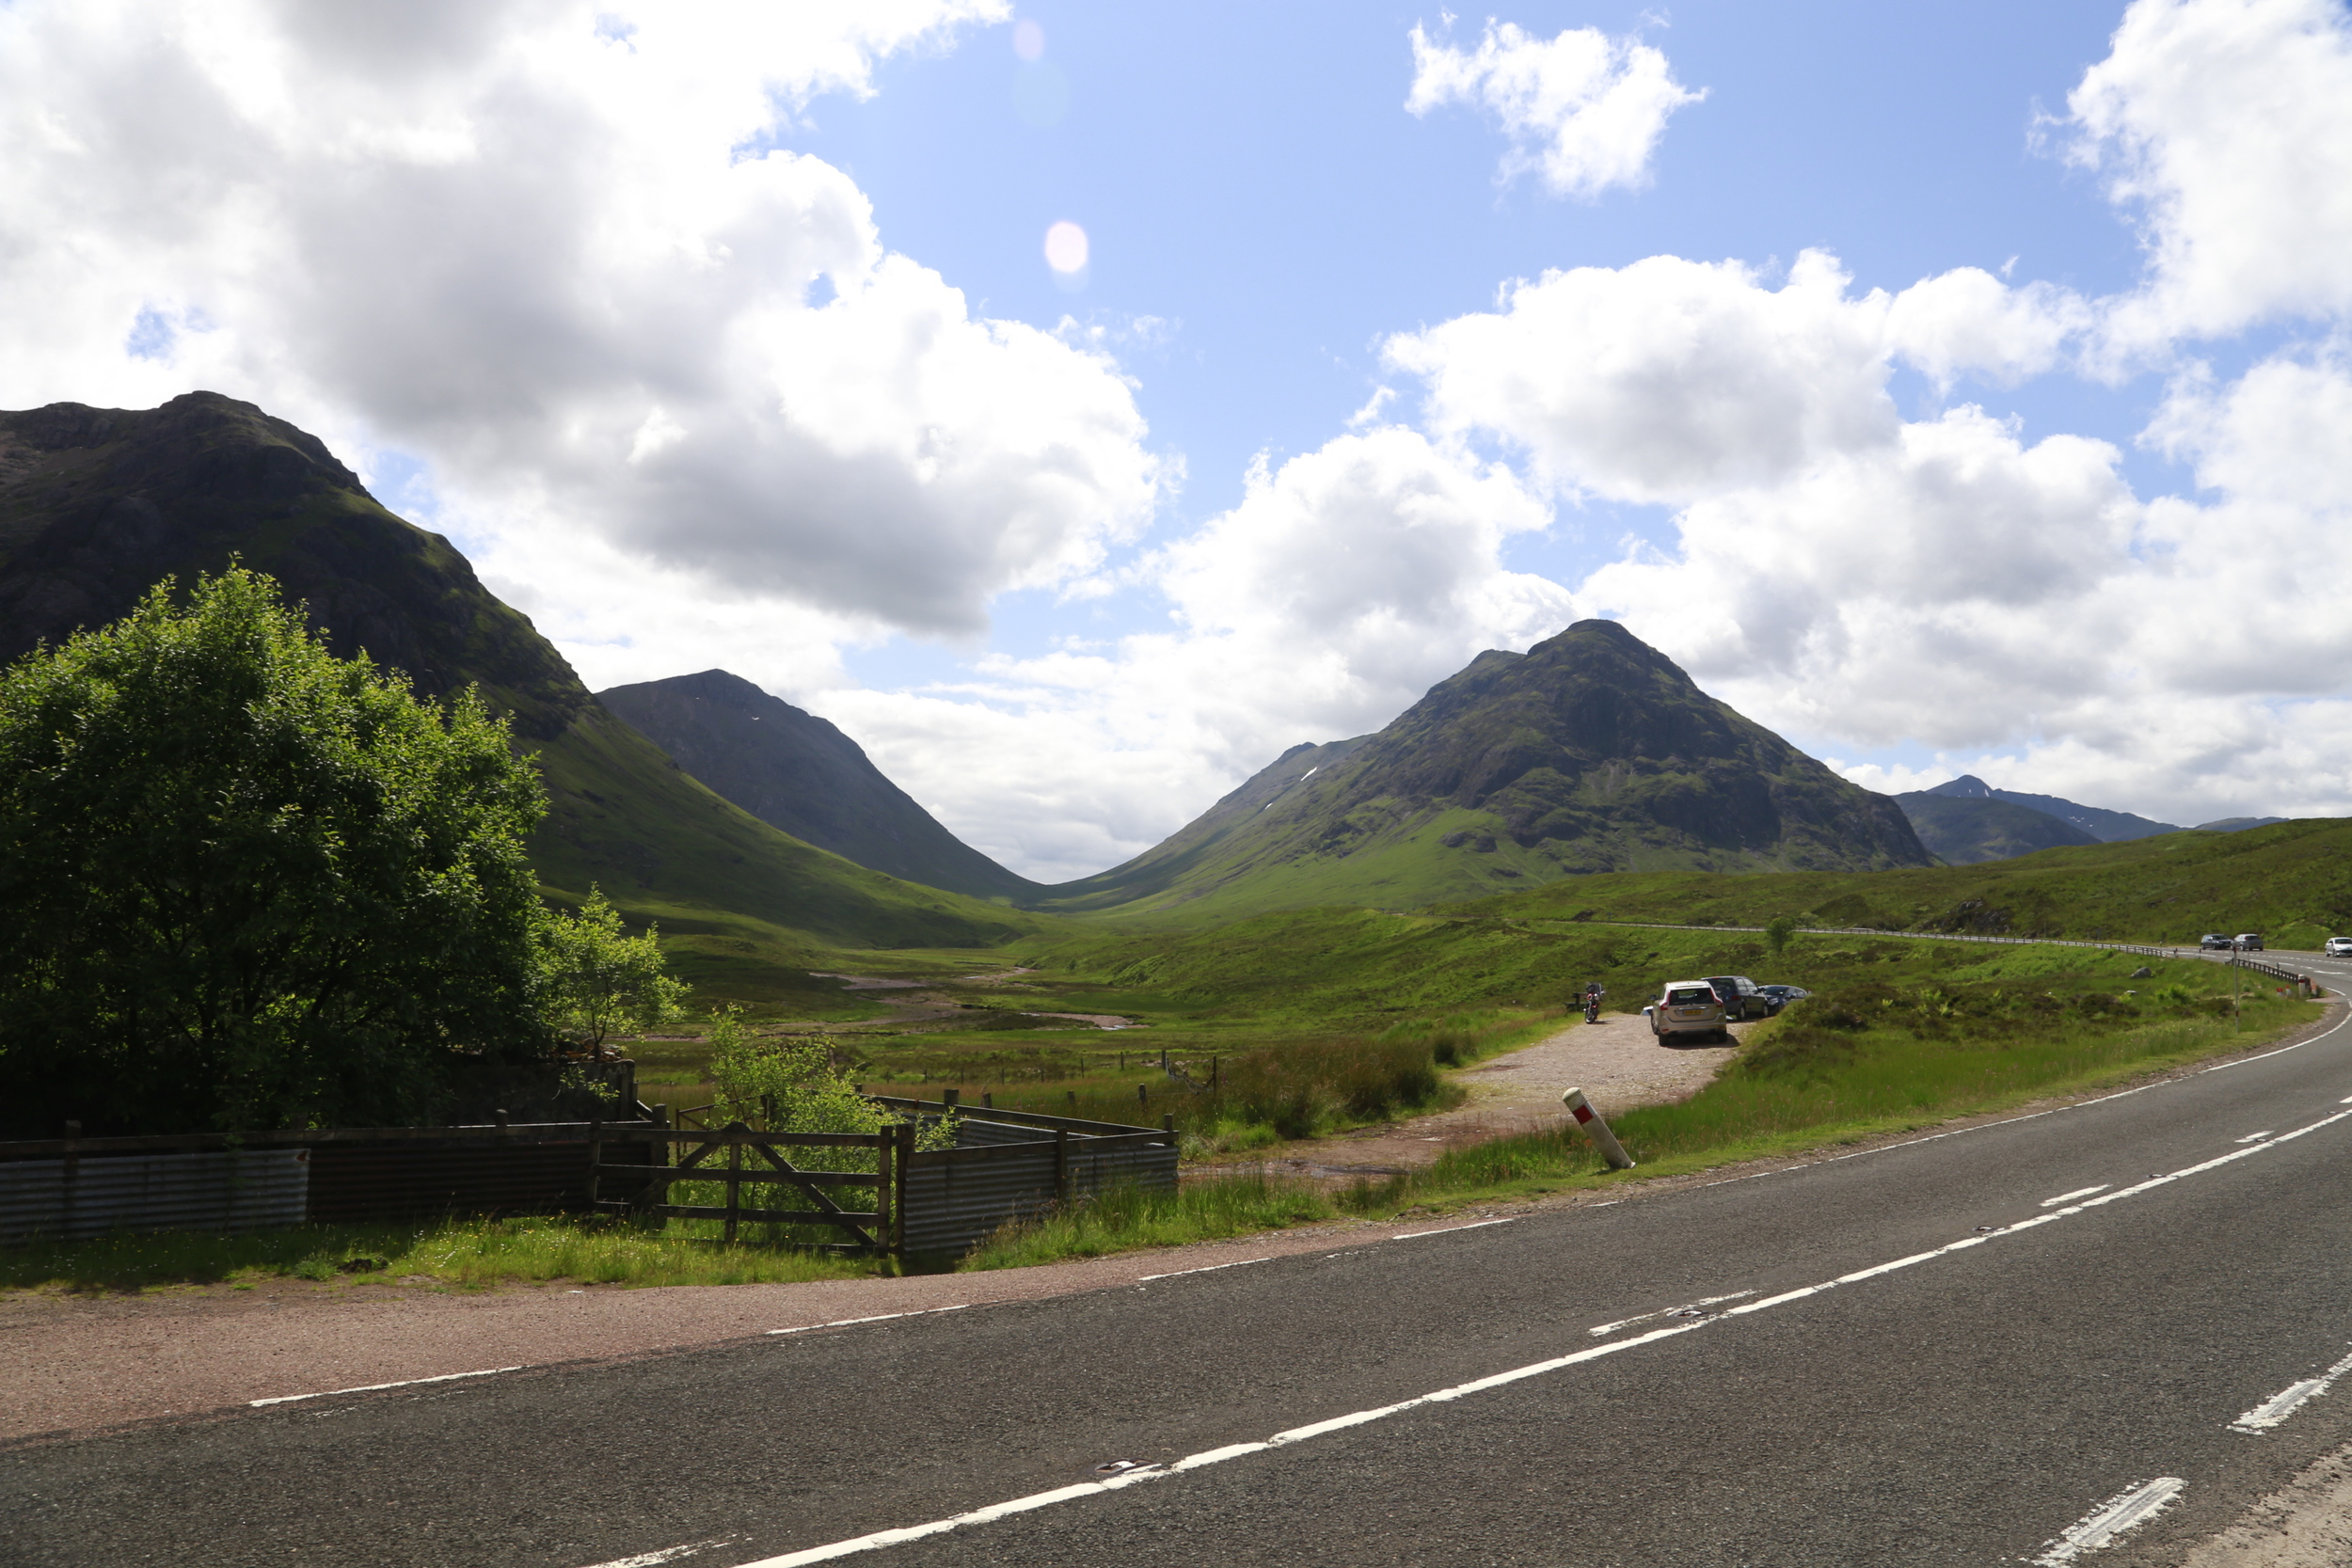 scenery, scotland, glen coe, beautiful, beautiful scenery, breath taking